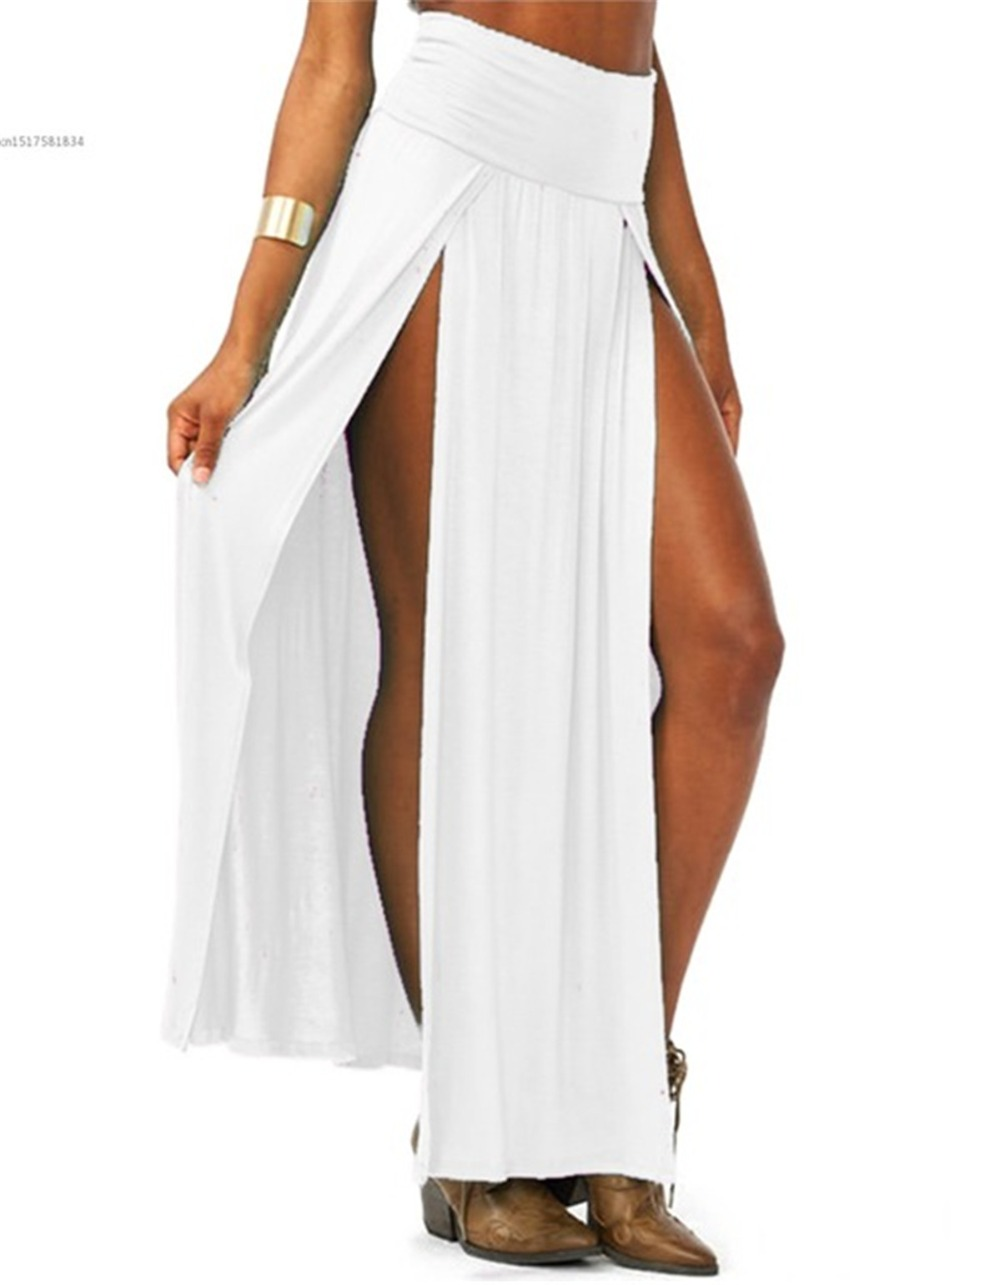 2019-New-Arrival-High-Waisted-Sexy-Womens-Double-Slits-Summer-Solid-Long-Maxi-Skirt-Wholesale-51.jpg_640x640 (5)